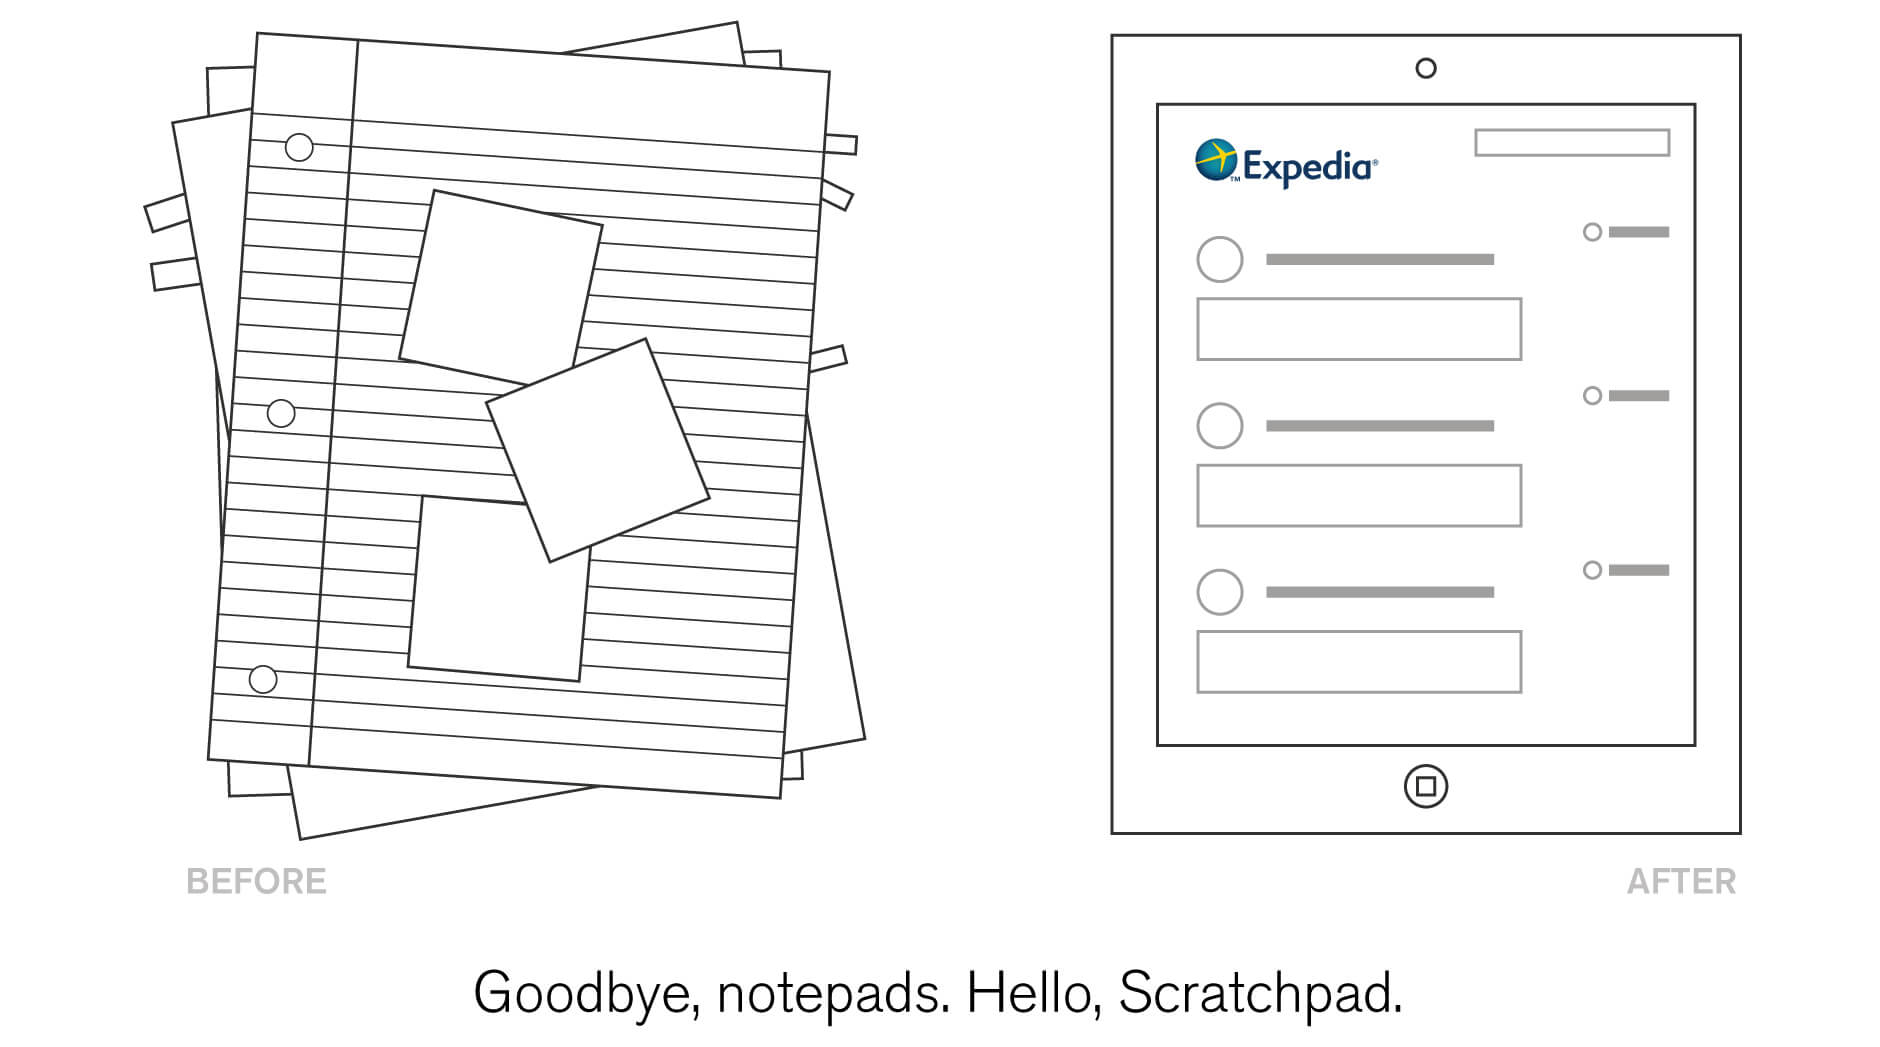 Expedia scratchpad